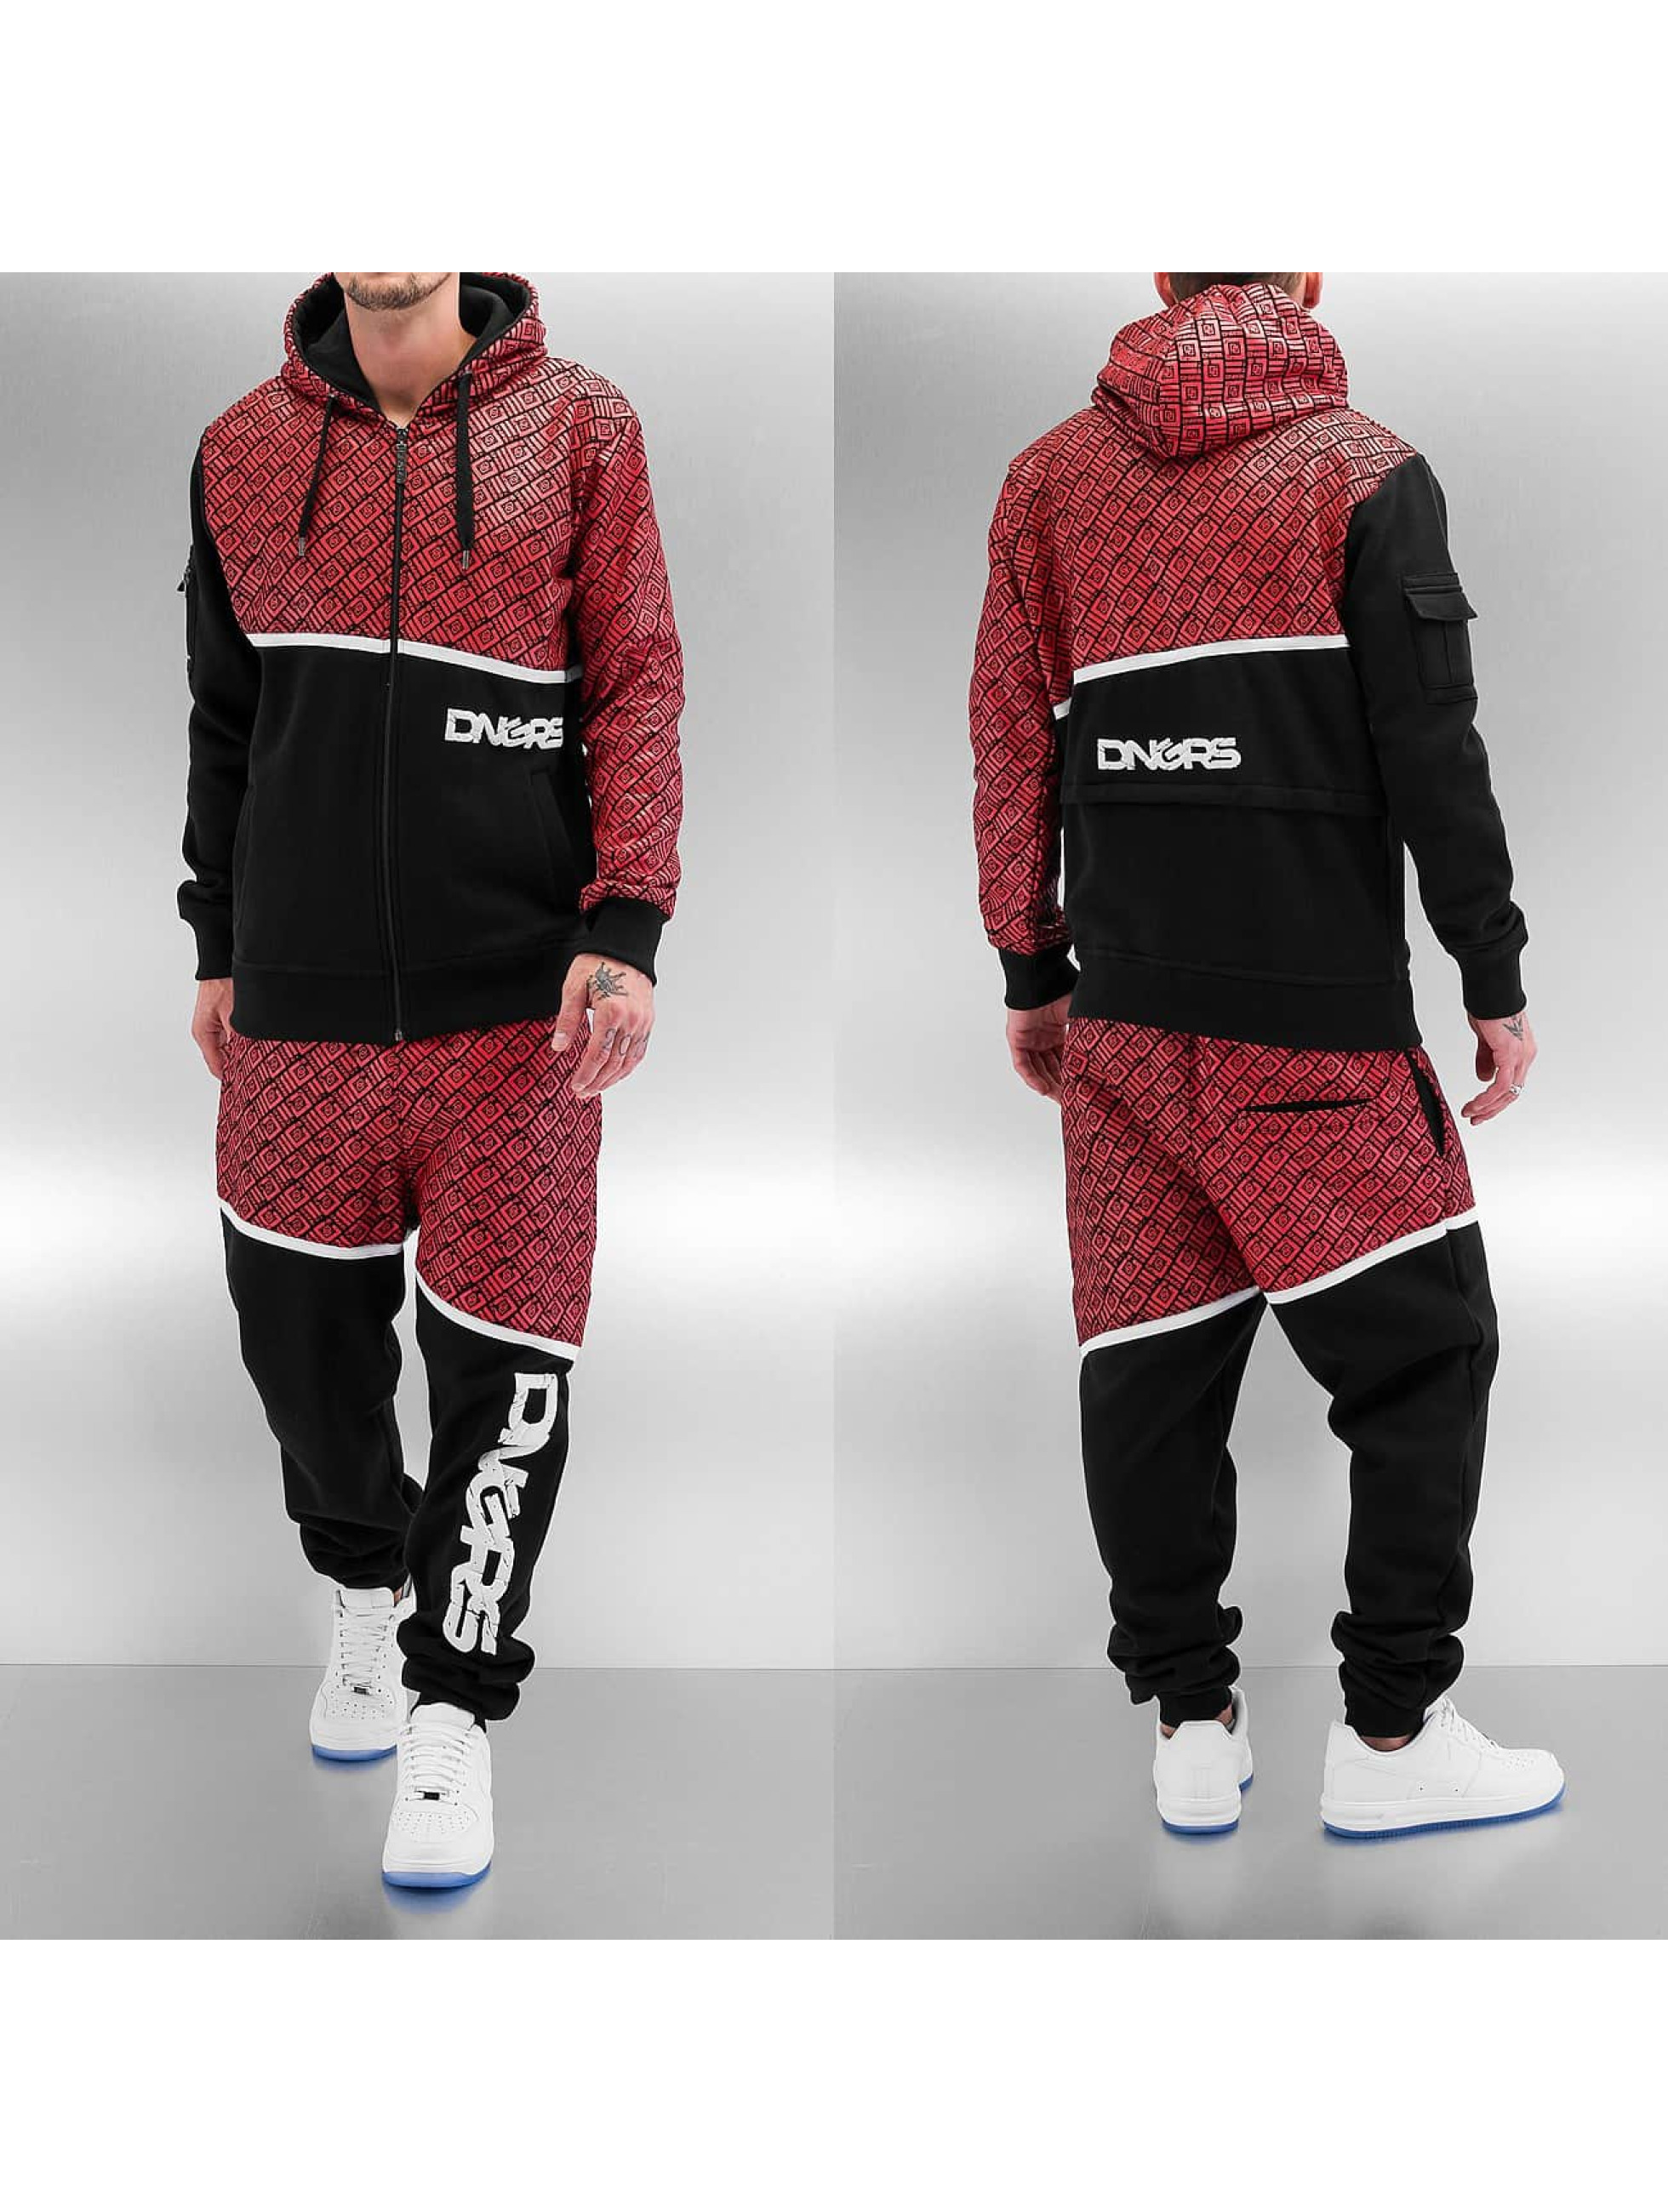 Dangerous DNGRS All Over Sweat Suit Black Red